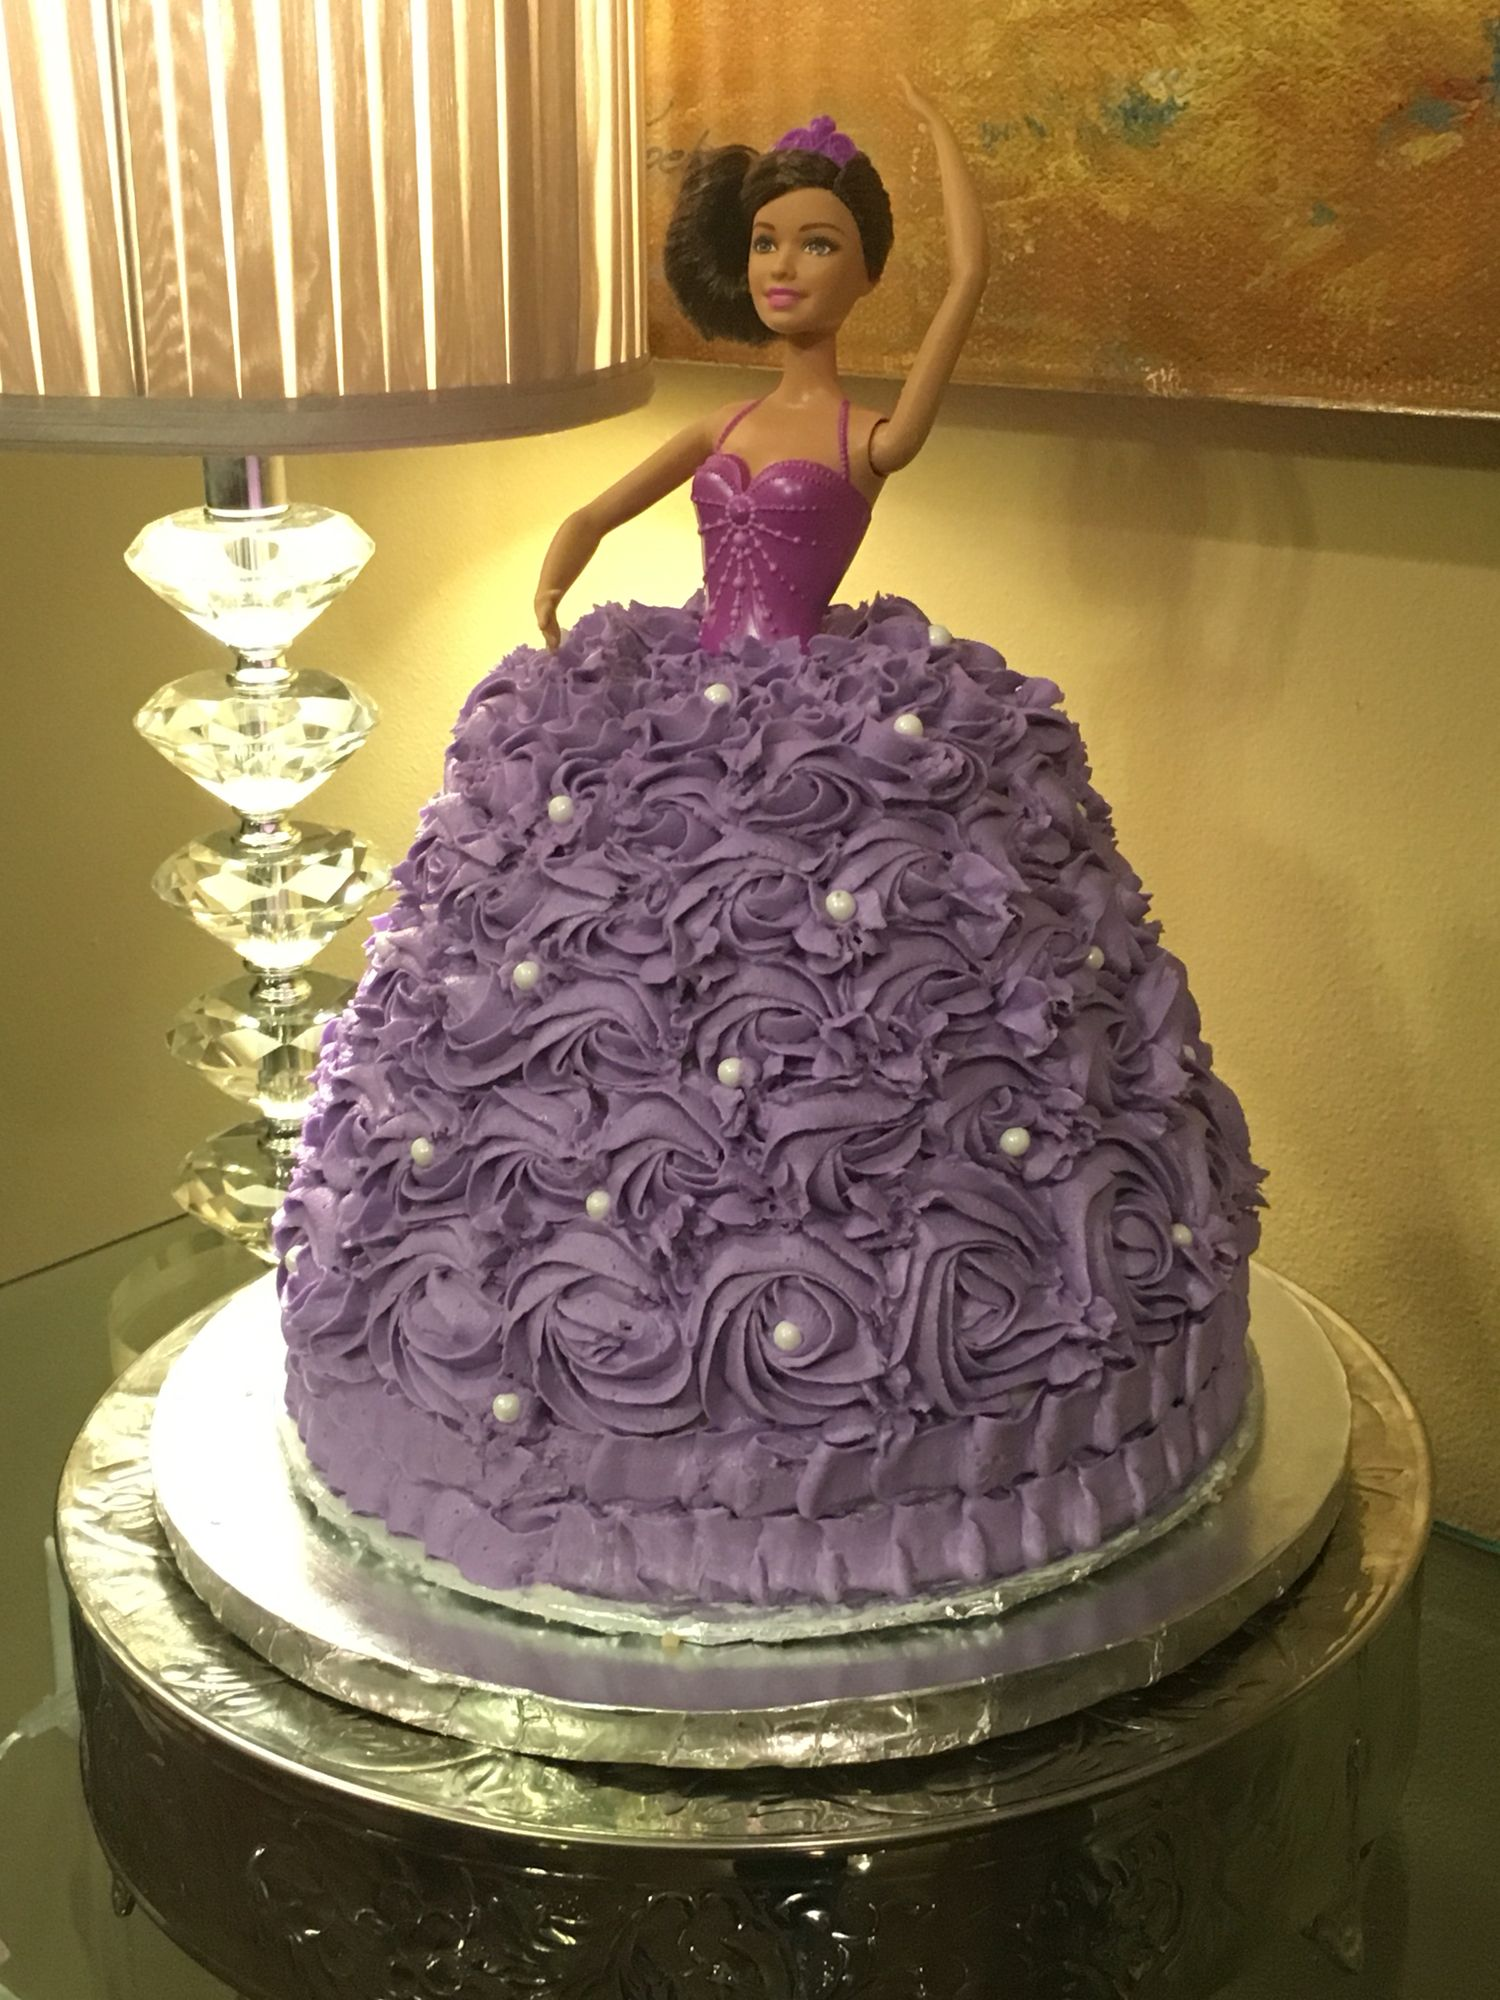 Pin By Michelle On Cake Decorating In 2019 Birthday Cake